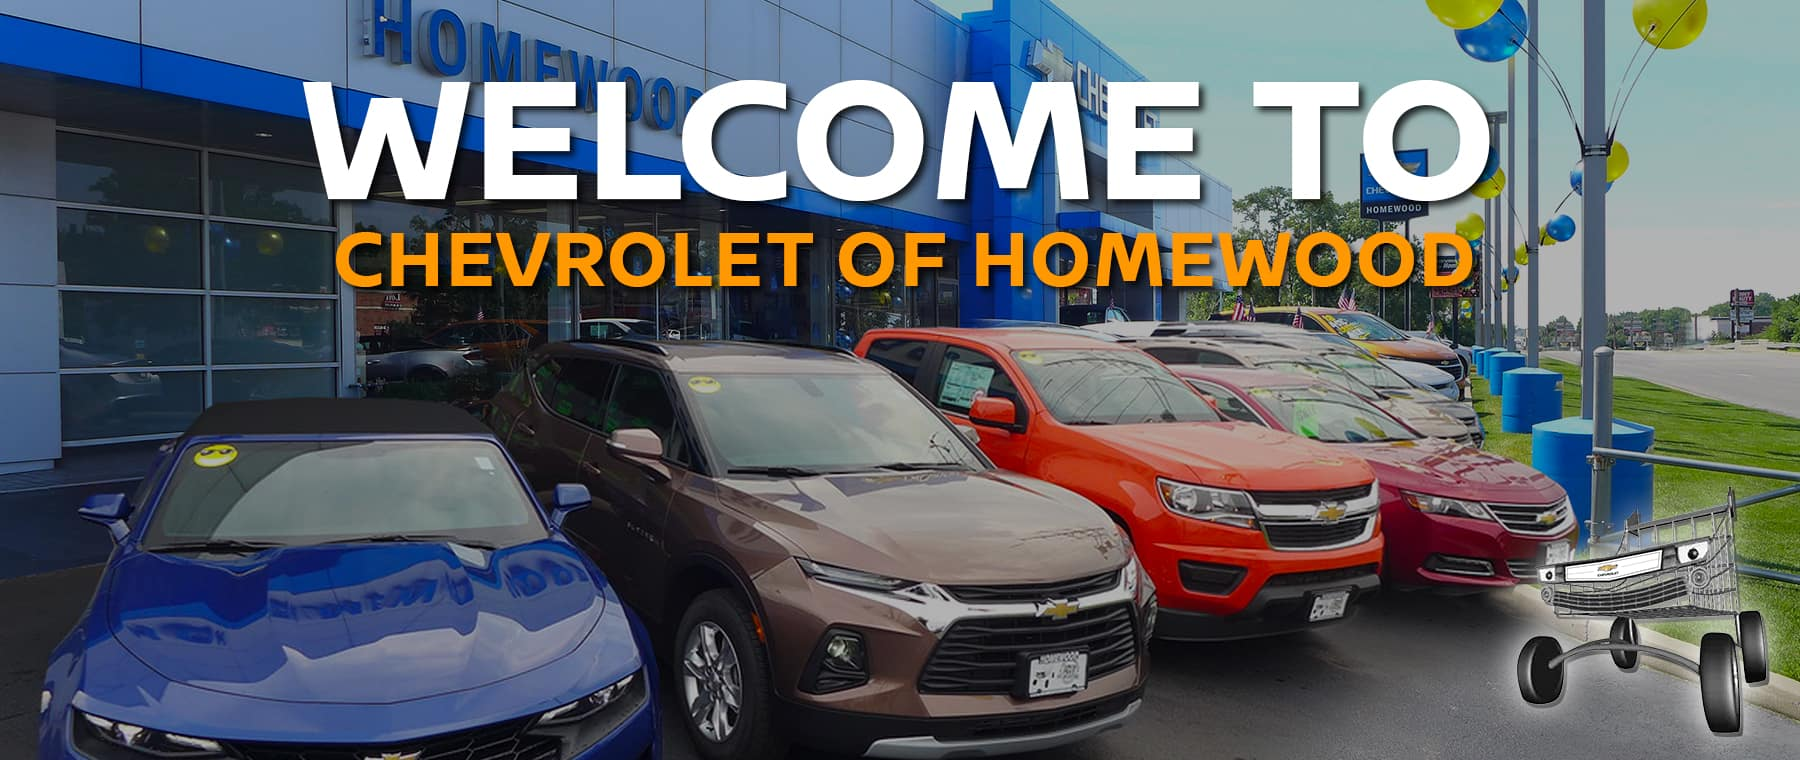 Welcome to Chevrolet of Homewood